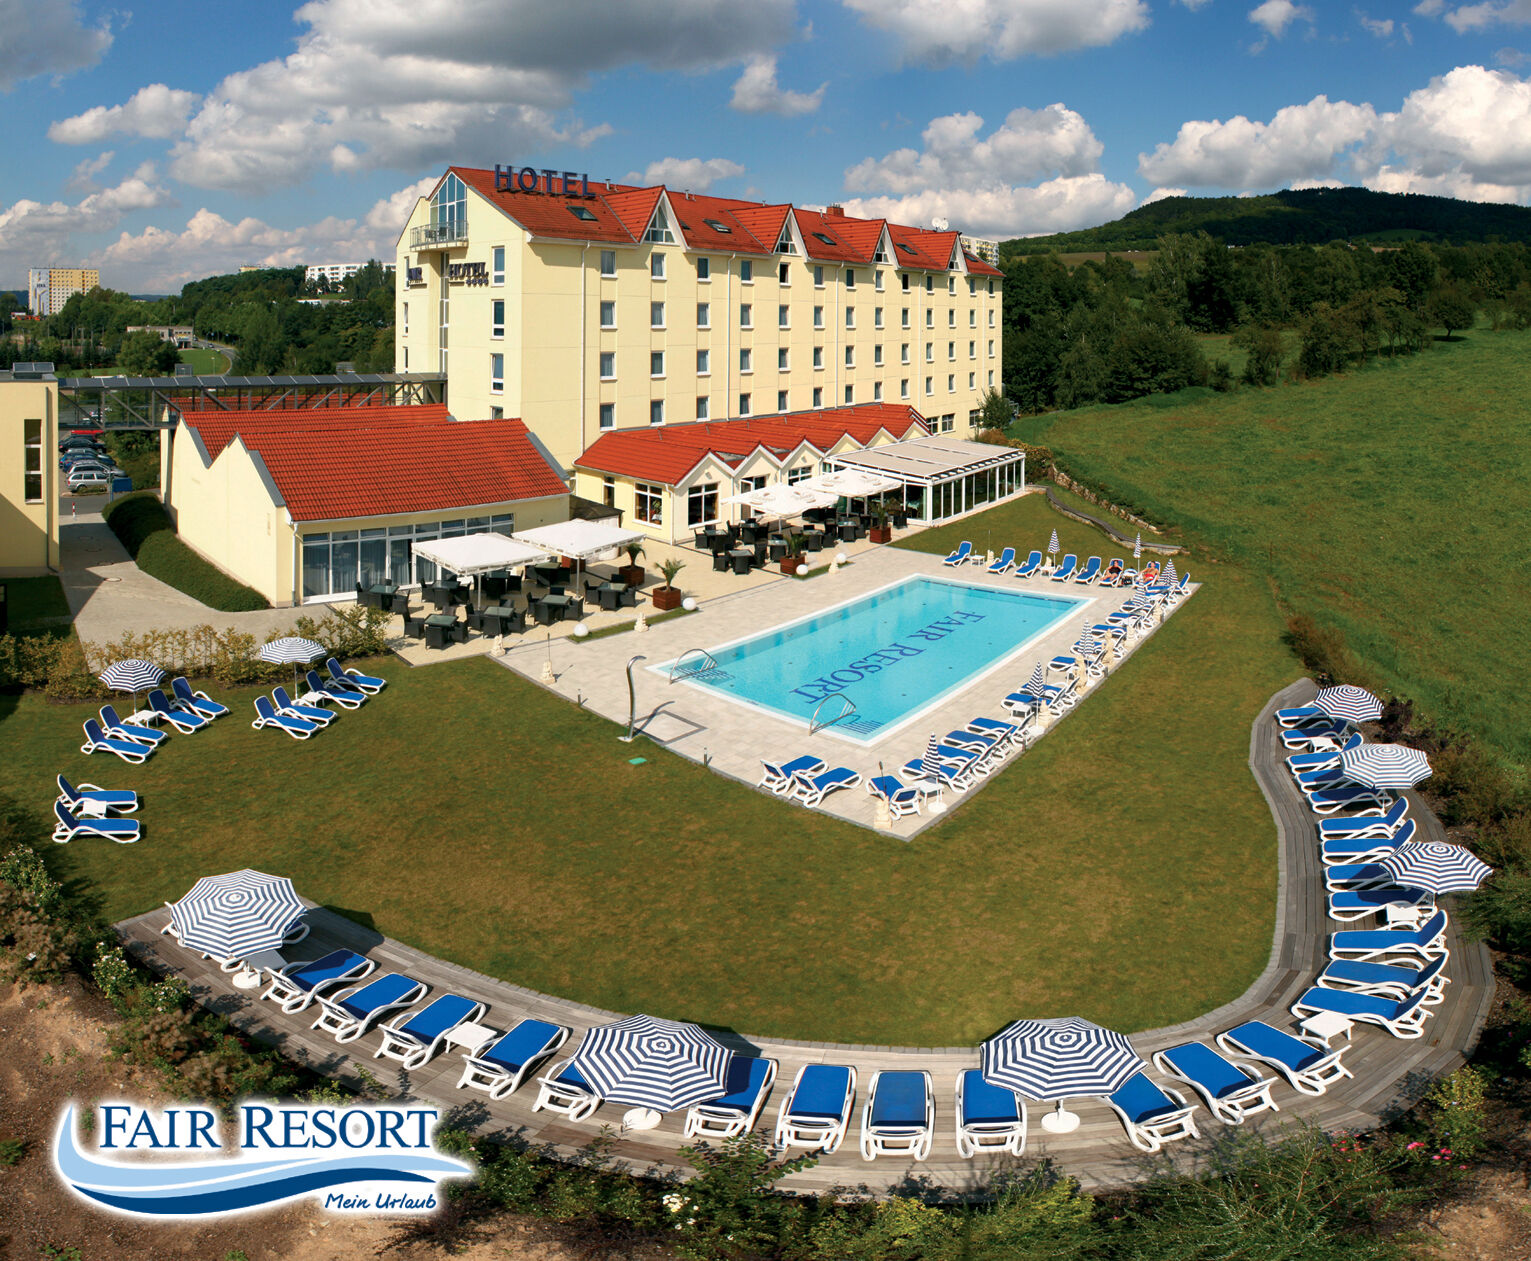 FAIR RESORT HOTEL